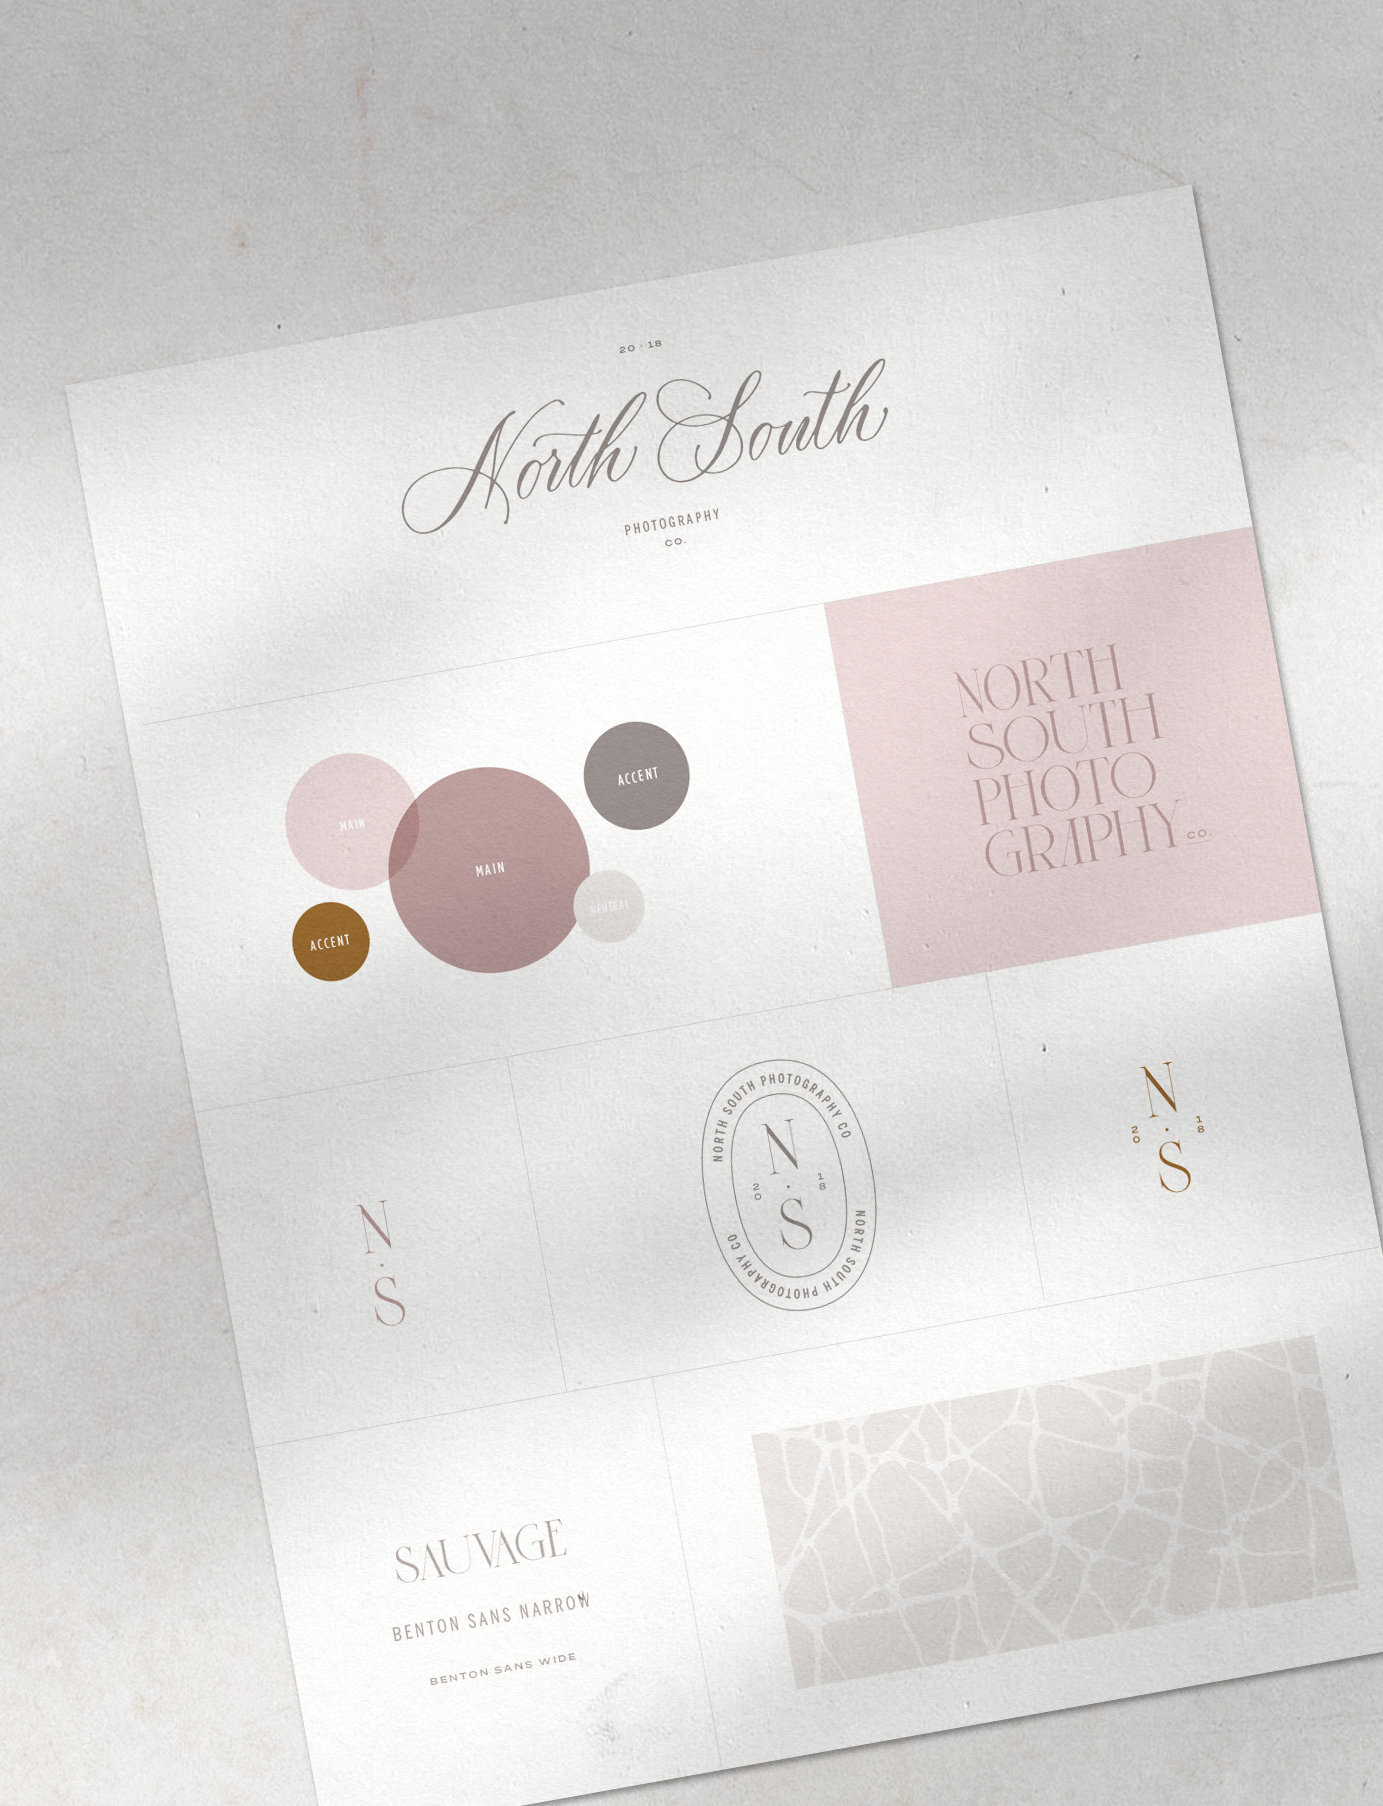 Calligraphy Premade Brand & Logo Design Kits for Creative Businesses, Stylish and Chic Social Media Templates, Saffron Avenue, www.shopsaffronavenue.com